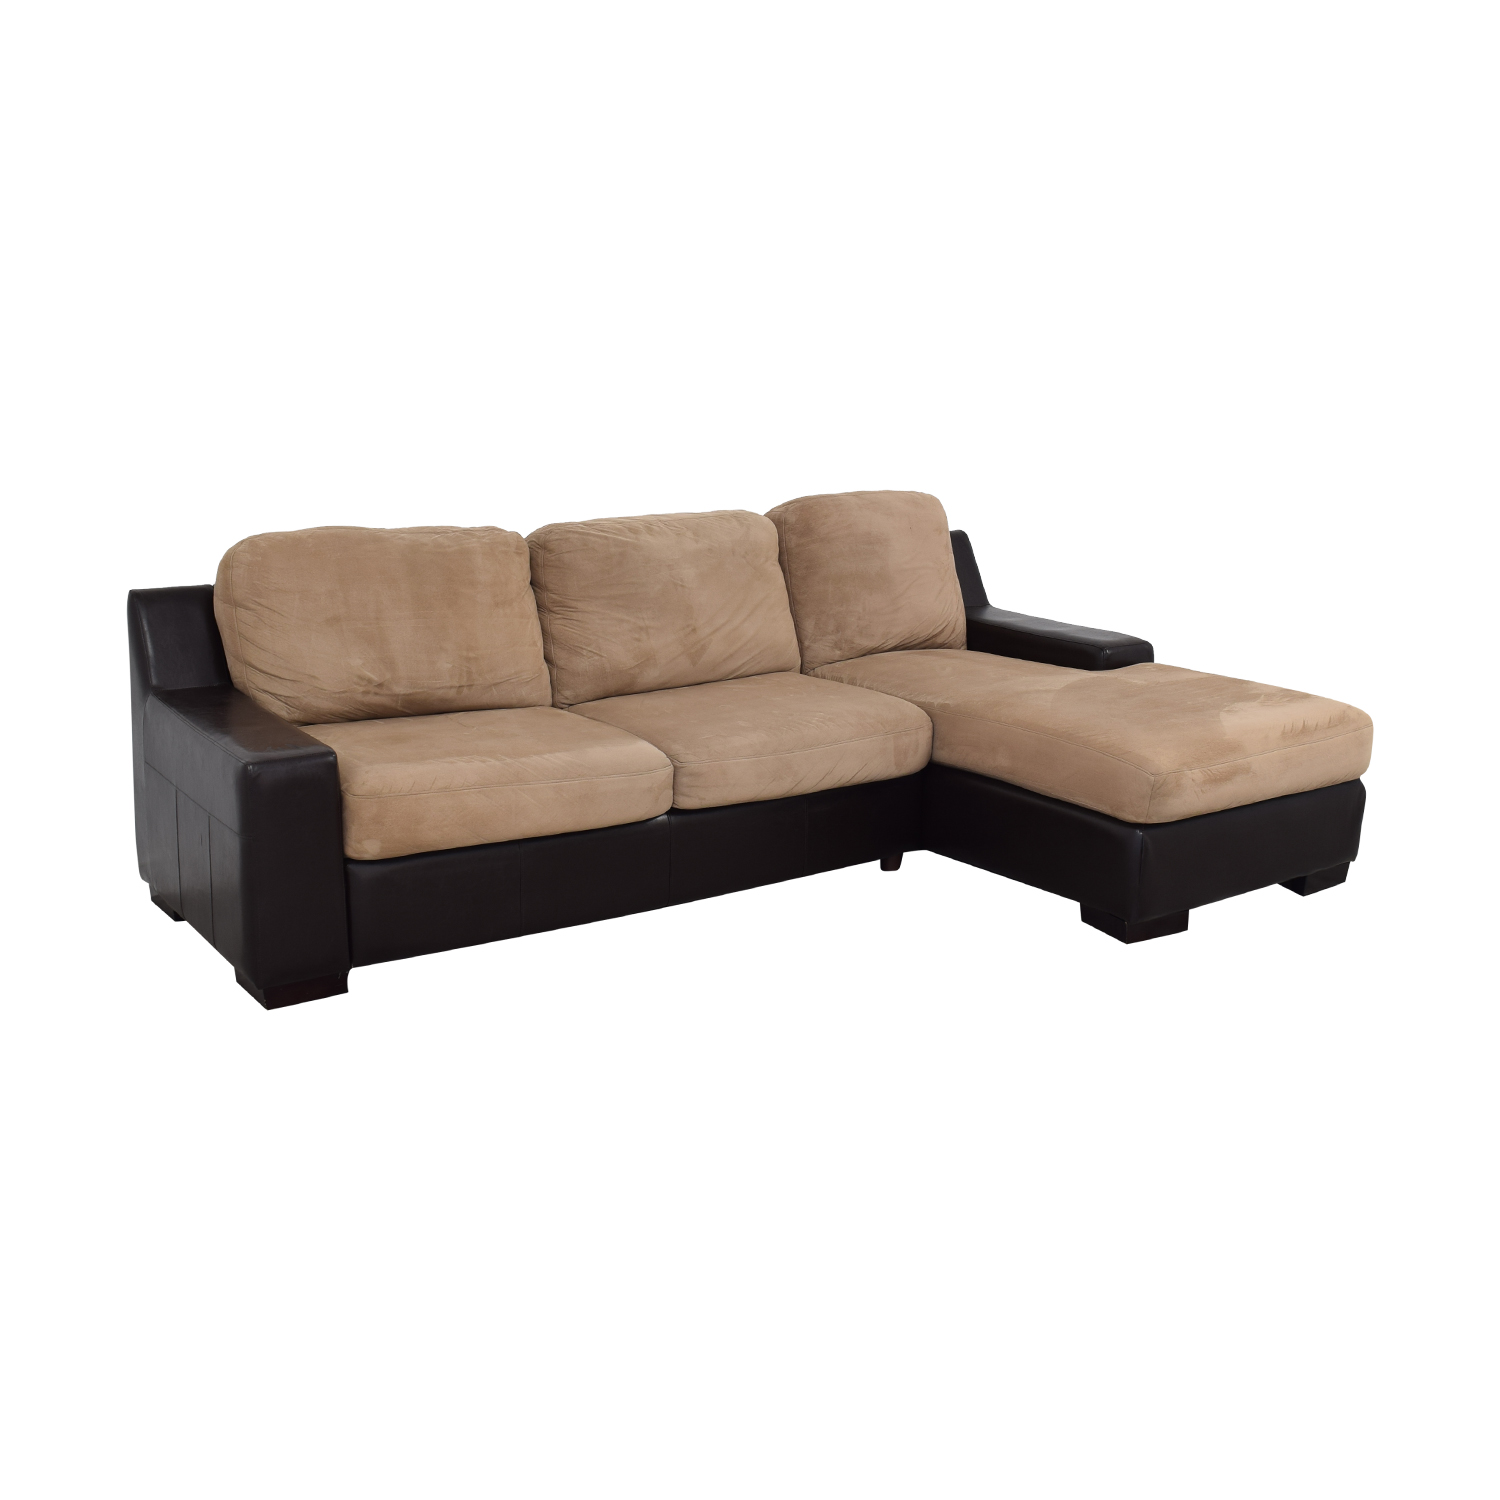 Red Barrel Studio Red Barrel Studio Swinyer Two-Toned Sectional used